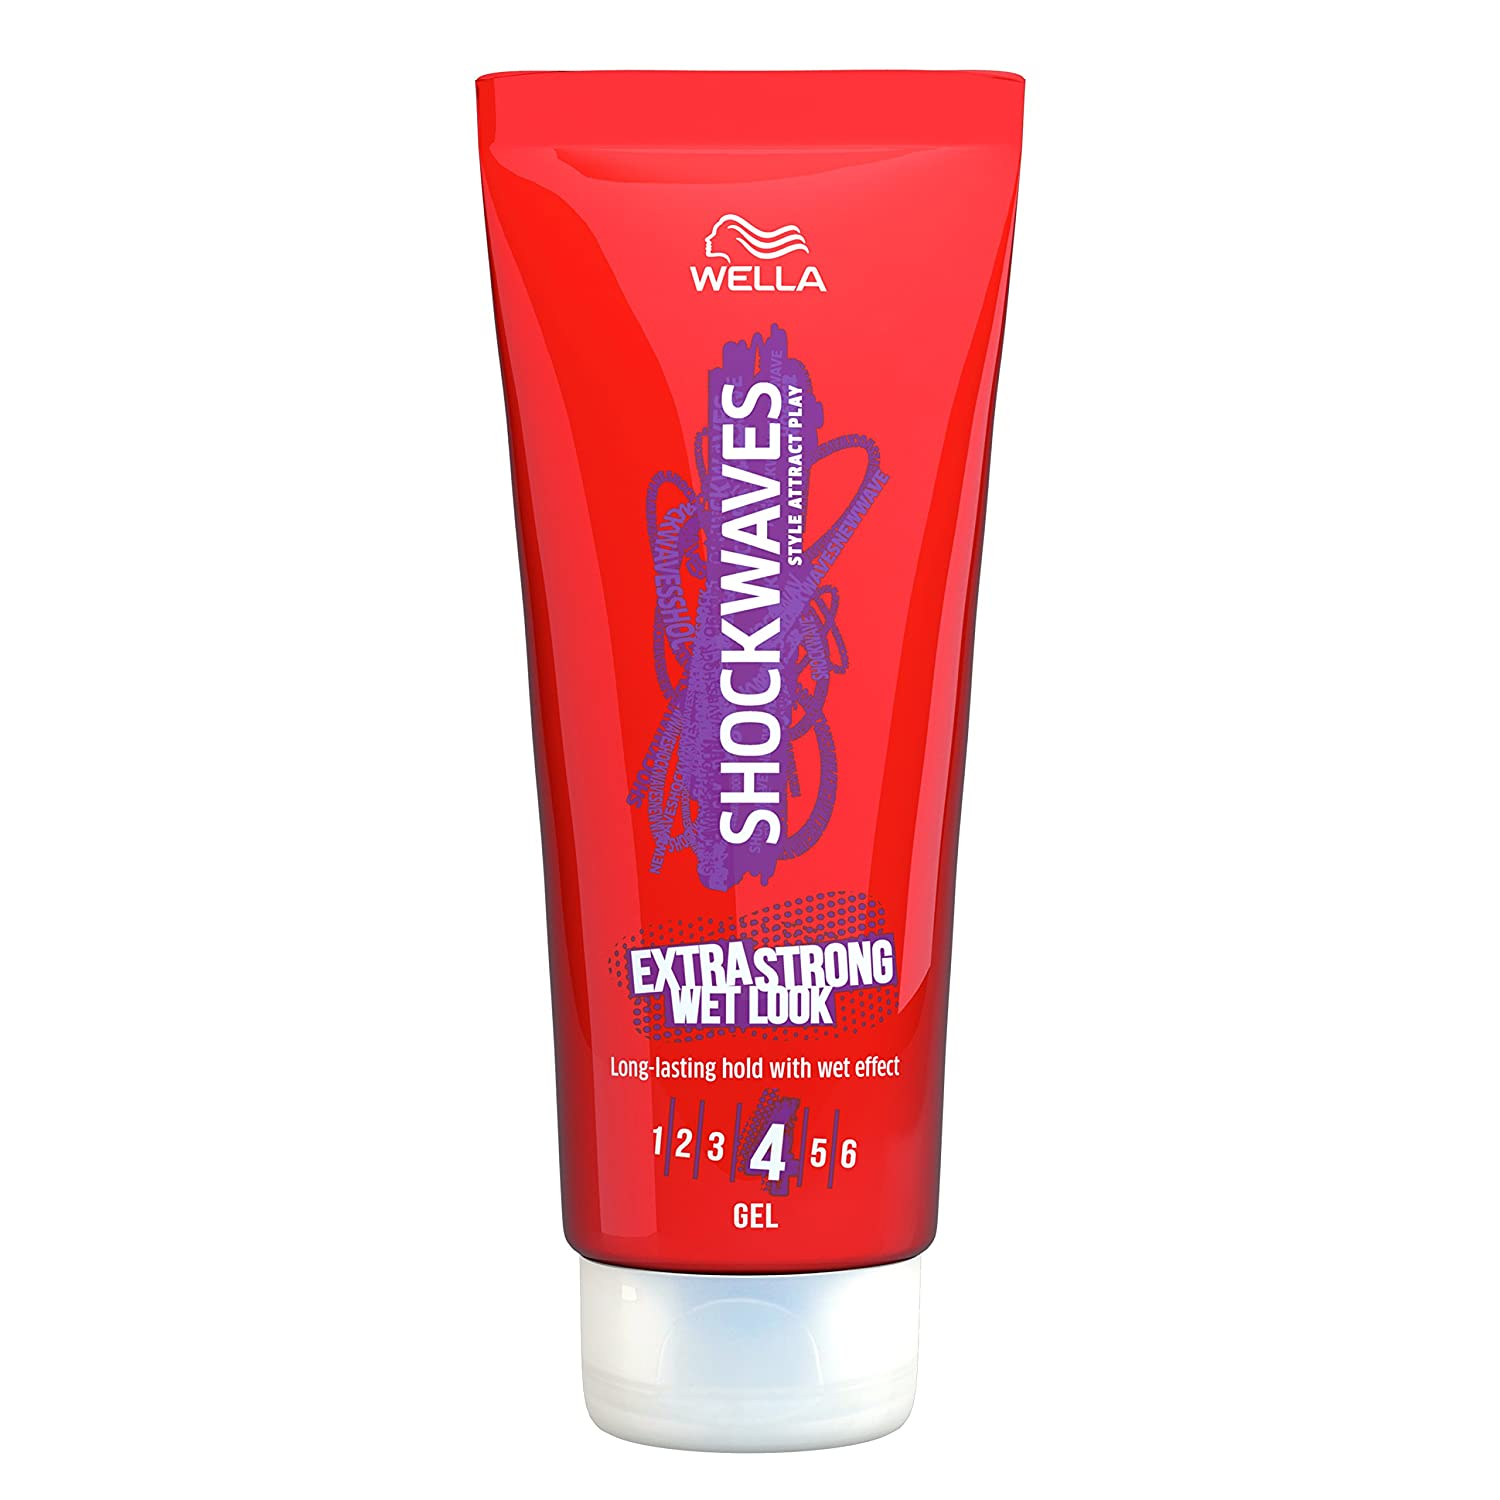 Wella Shockwaves Extra Strong Wet Look Gel 200 ml Procter & Gamble 100684112